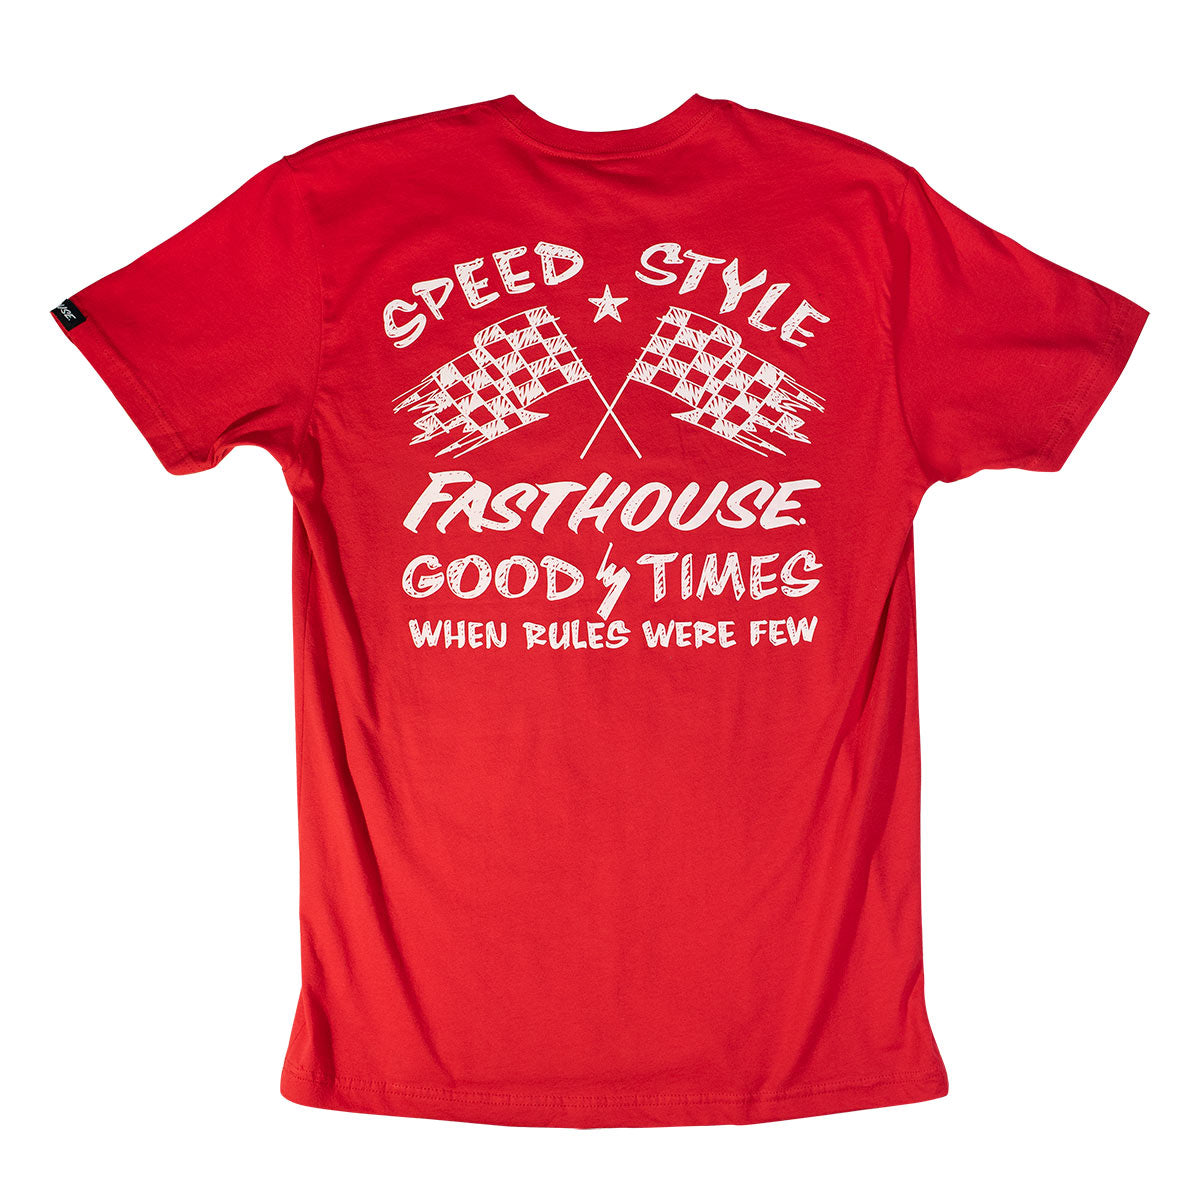 Fasthouse - Finish Line Tee - Red